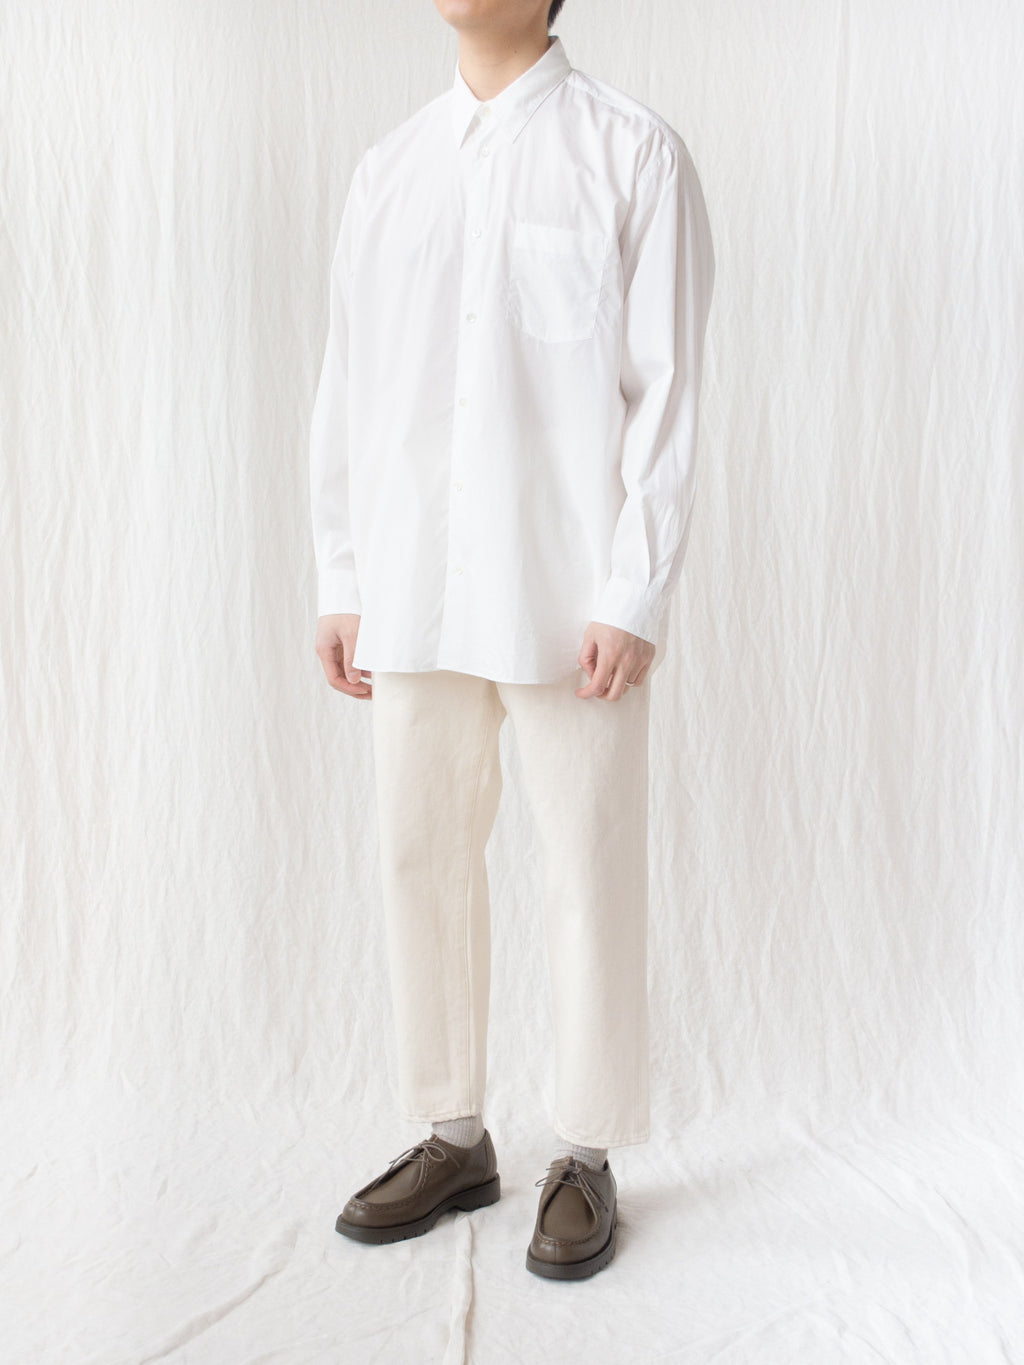 Namu Shop - Fujito B/S Shirt - White